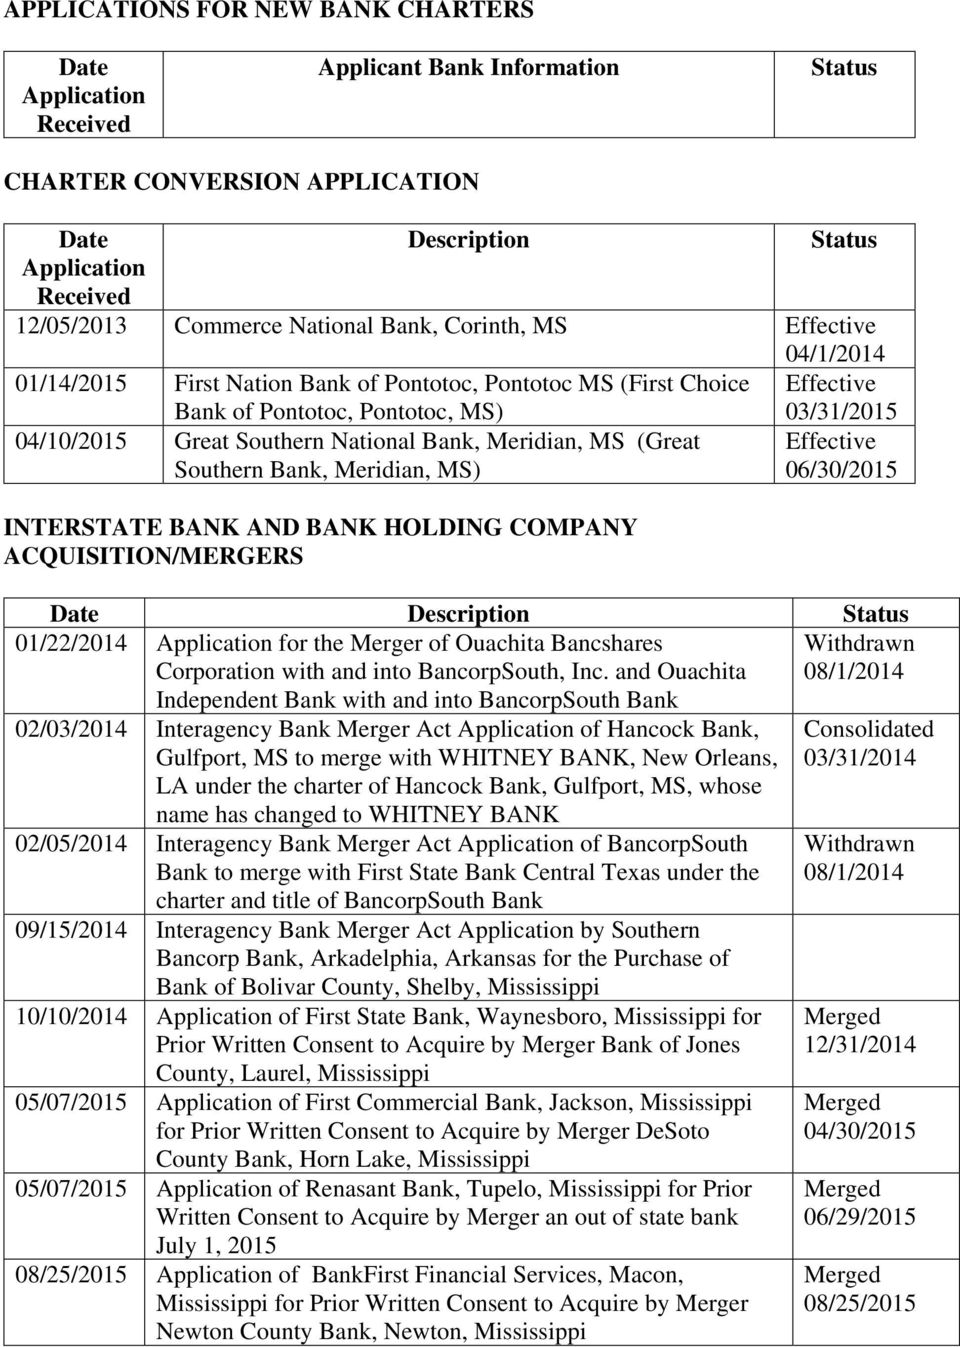 Southern Bank, Meridian, ) INTERSTATE BANK AND BANK HOLDING COMPANY ACQUISITION/MERGERS 03/31/2015 Effective 06/30/2015 Date Description Status 01/22/2014 Application for the Merger of Ouachita